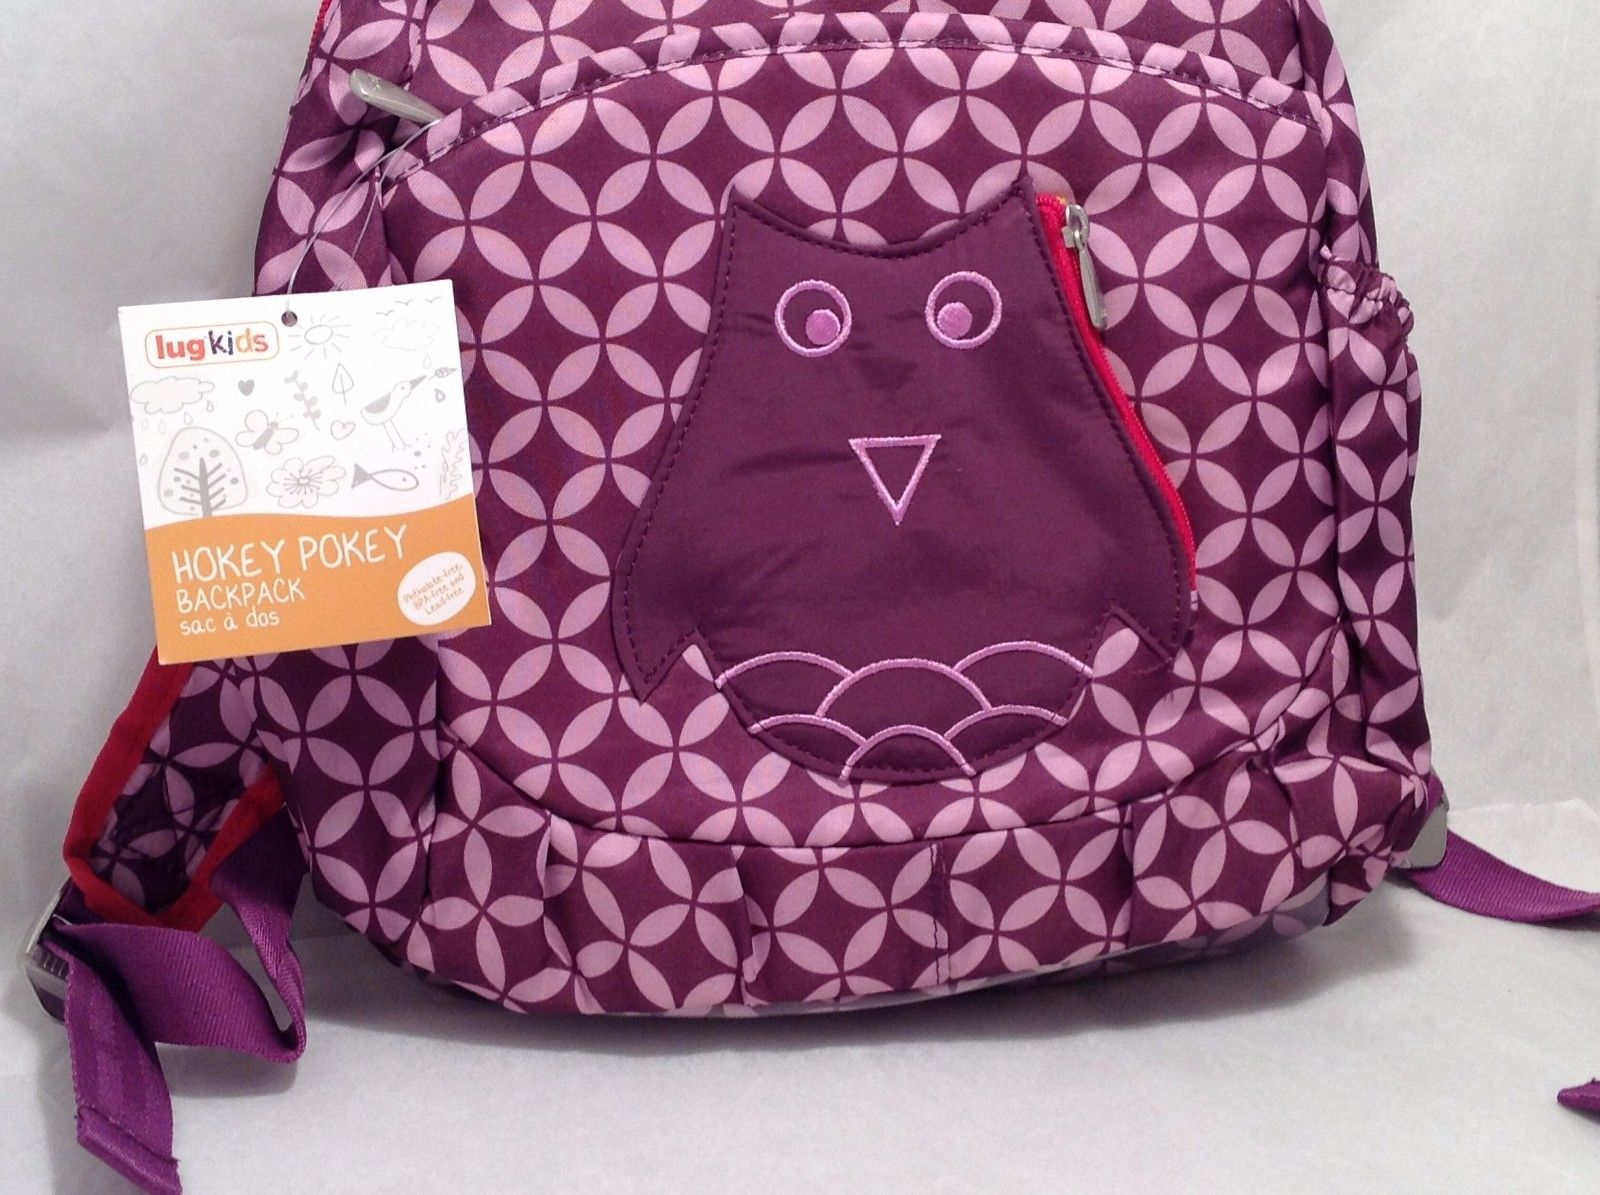 Adorable New With Tags NWT Lug Kids Hokey Pokey Backpack Plum Purple Owl